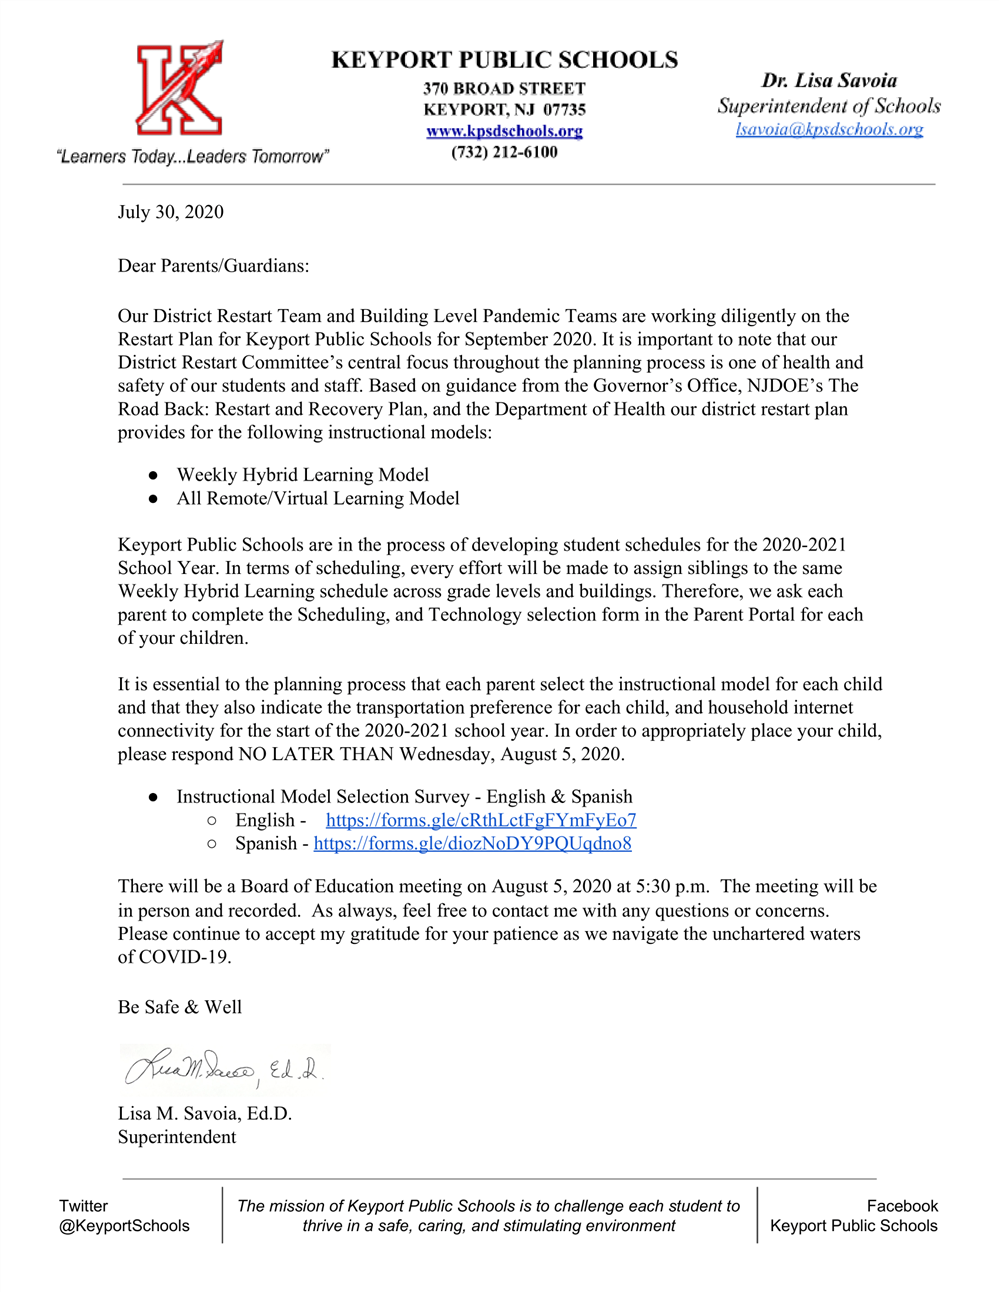 Instruction and Technology Letter July 30, 2020